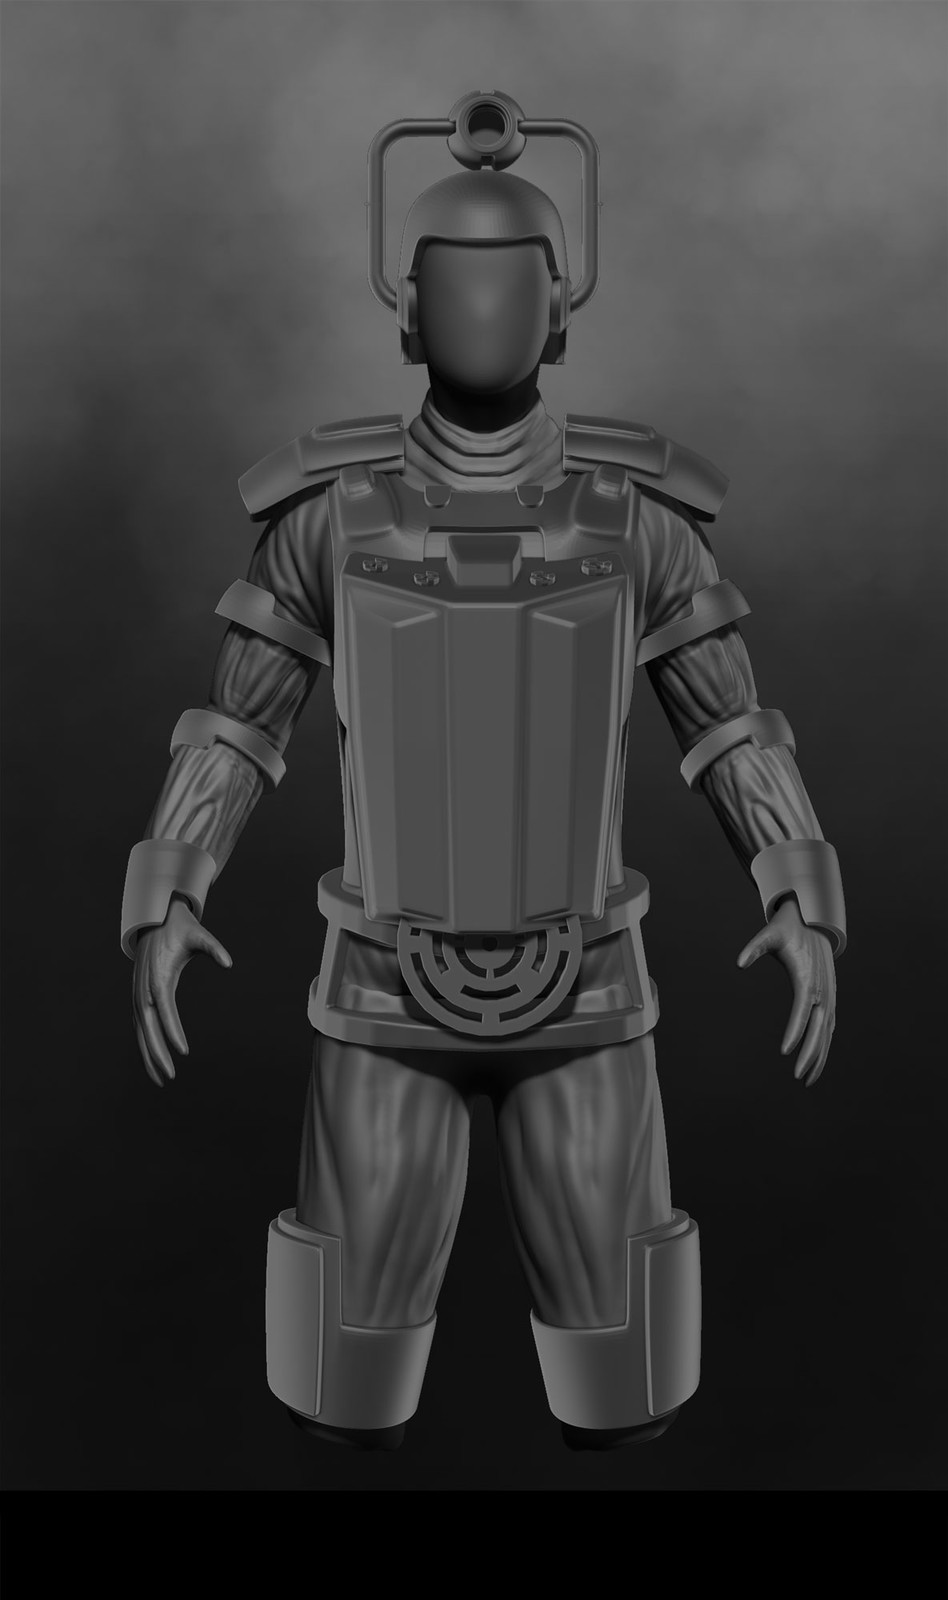 Basic 3D mesh used as painting guide.